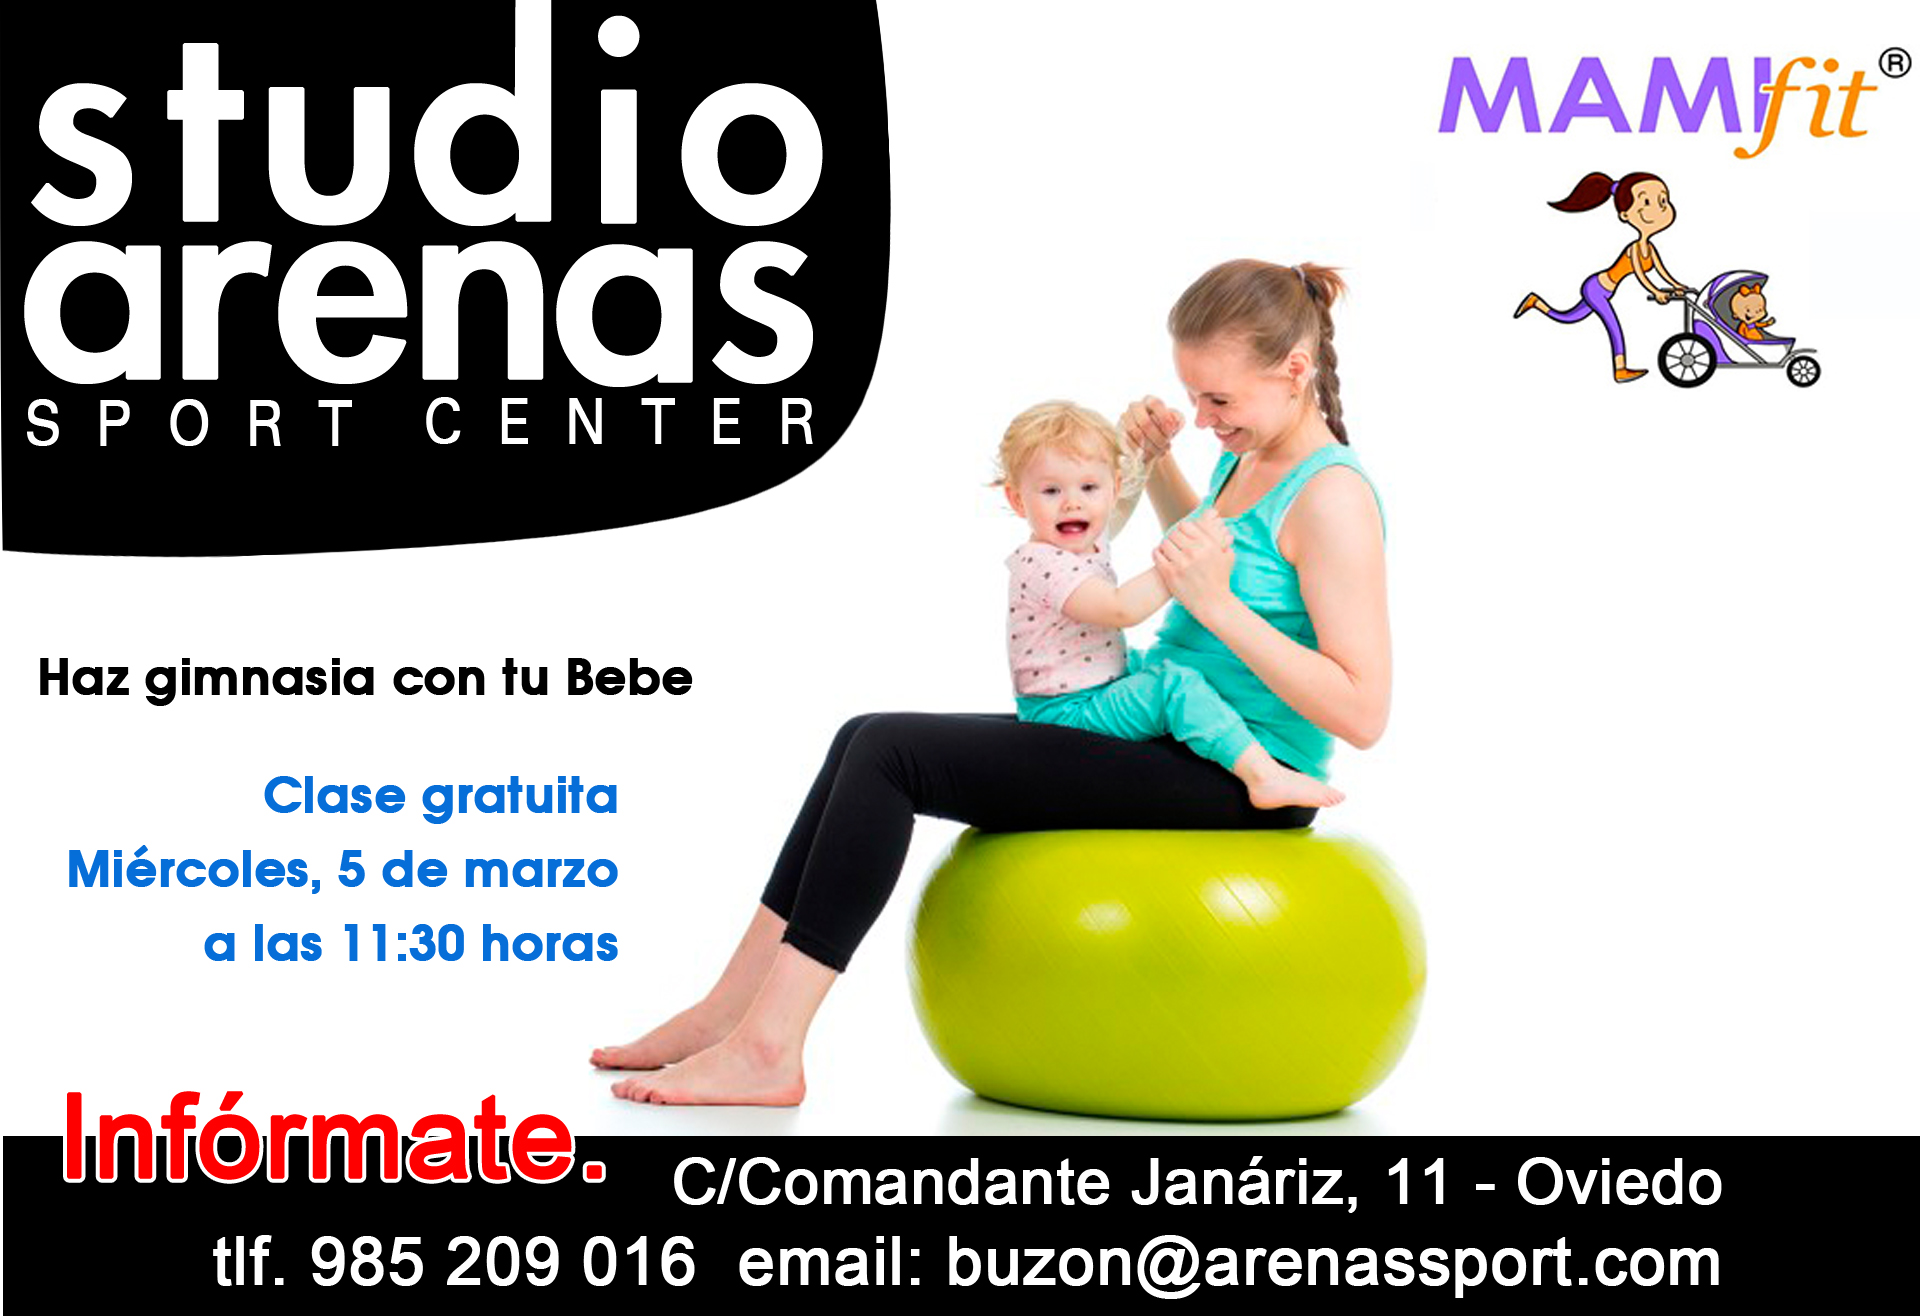 Clases con Bebes, Mamifit